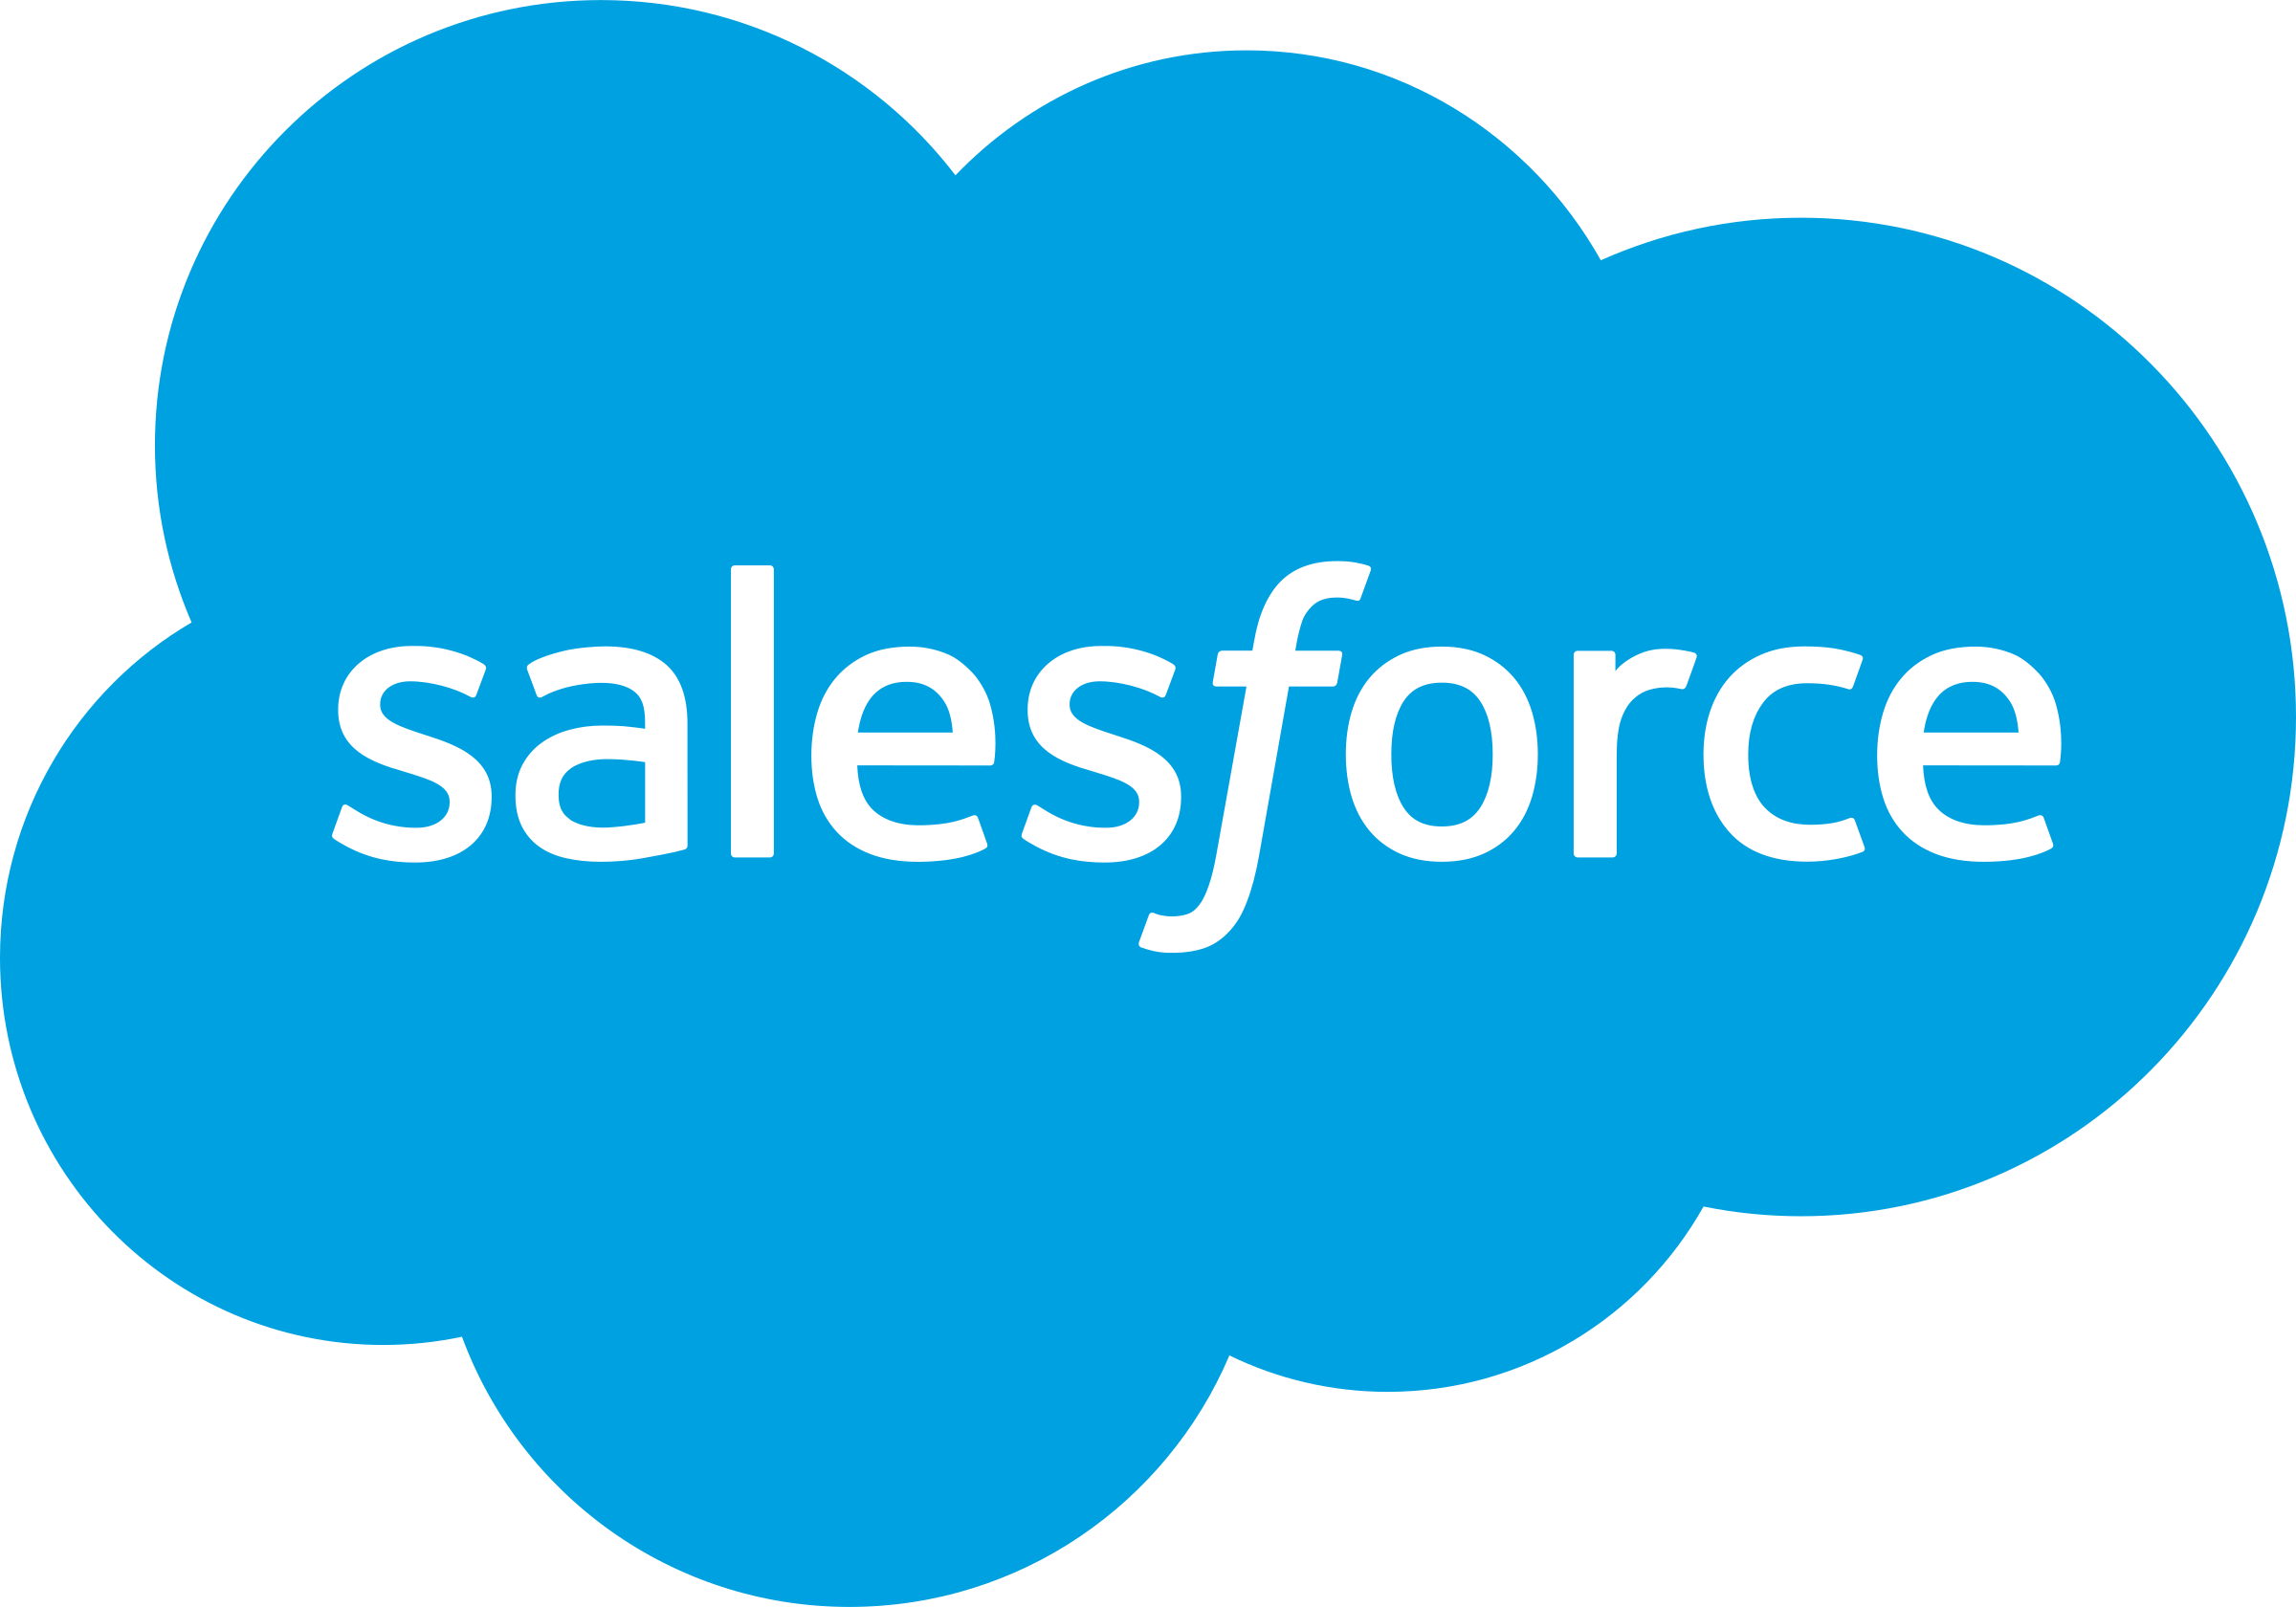 Salesforce logo png. Transparent svg vector freebie